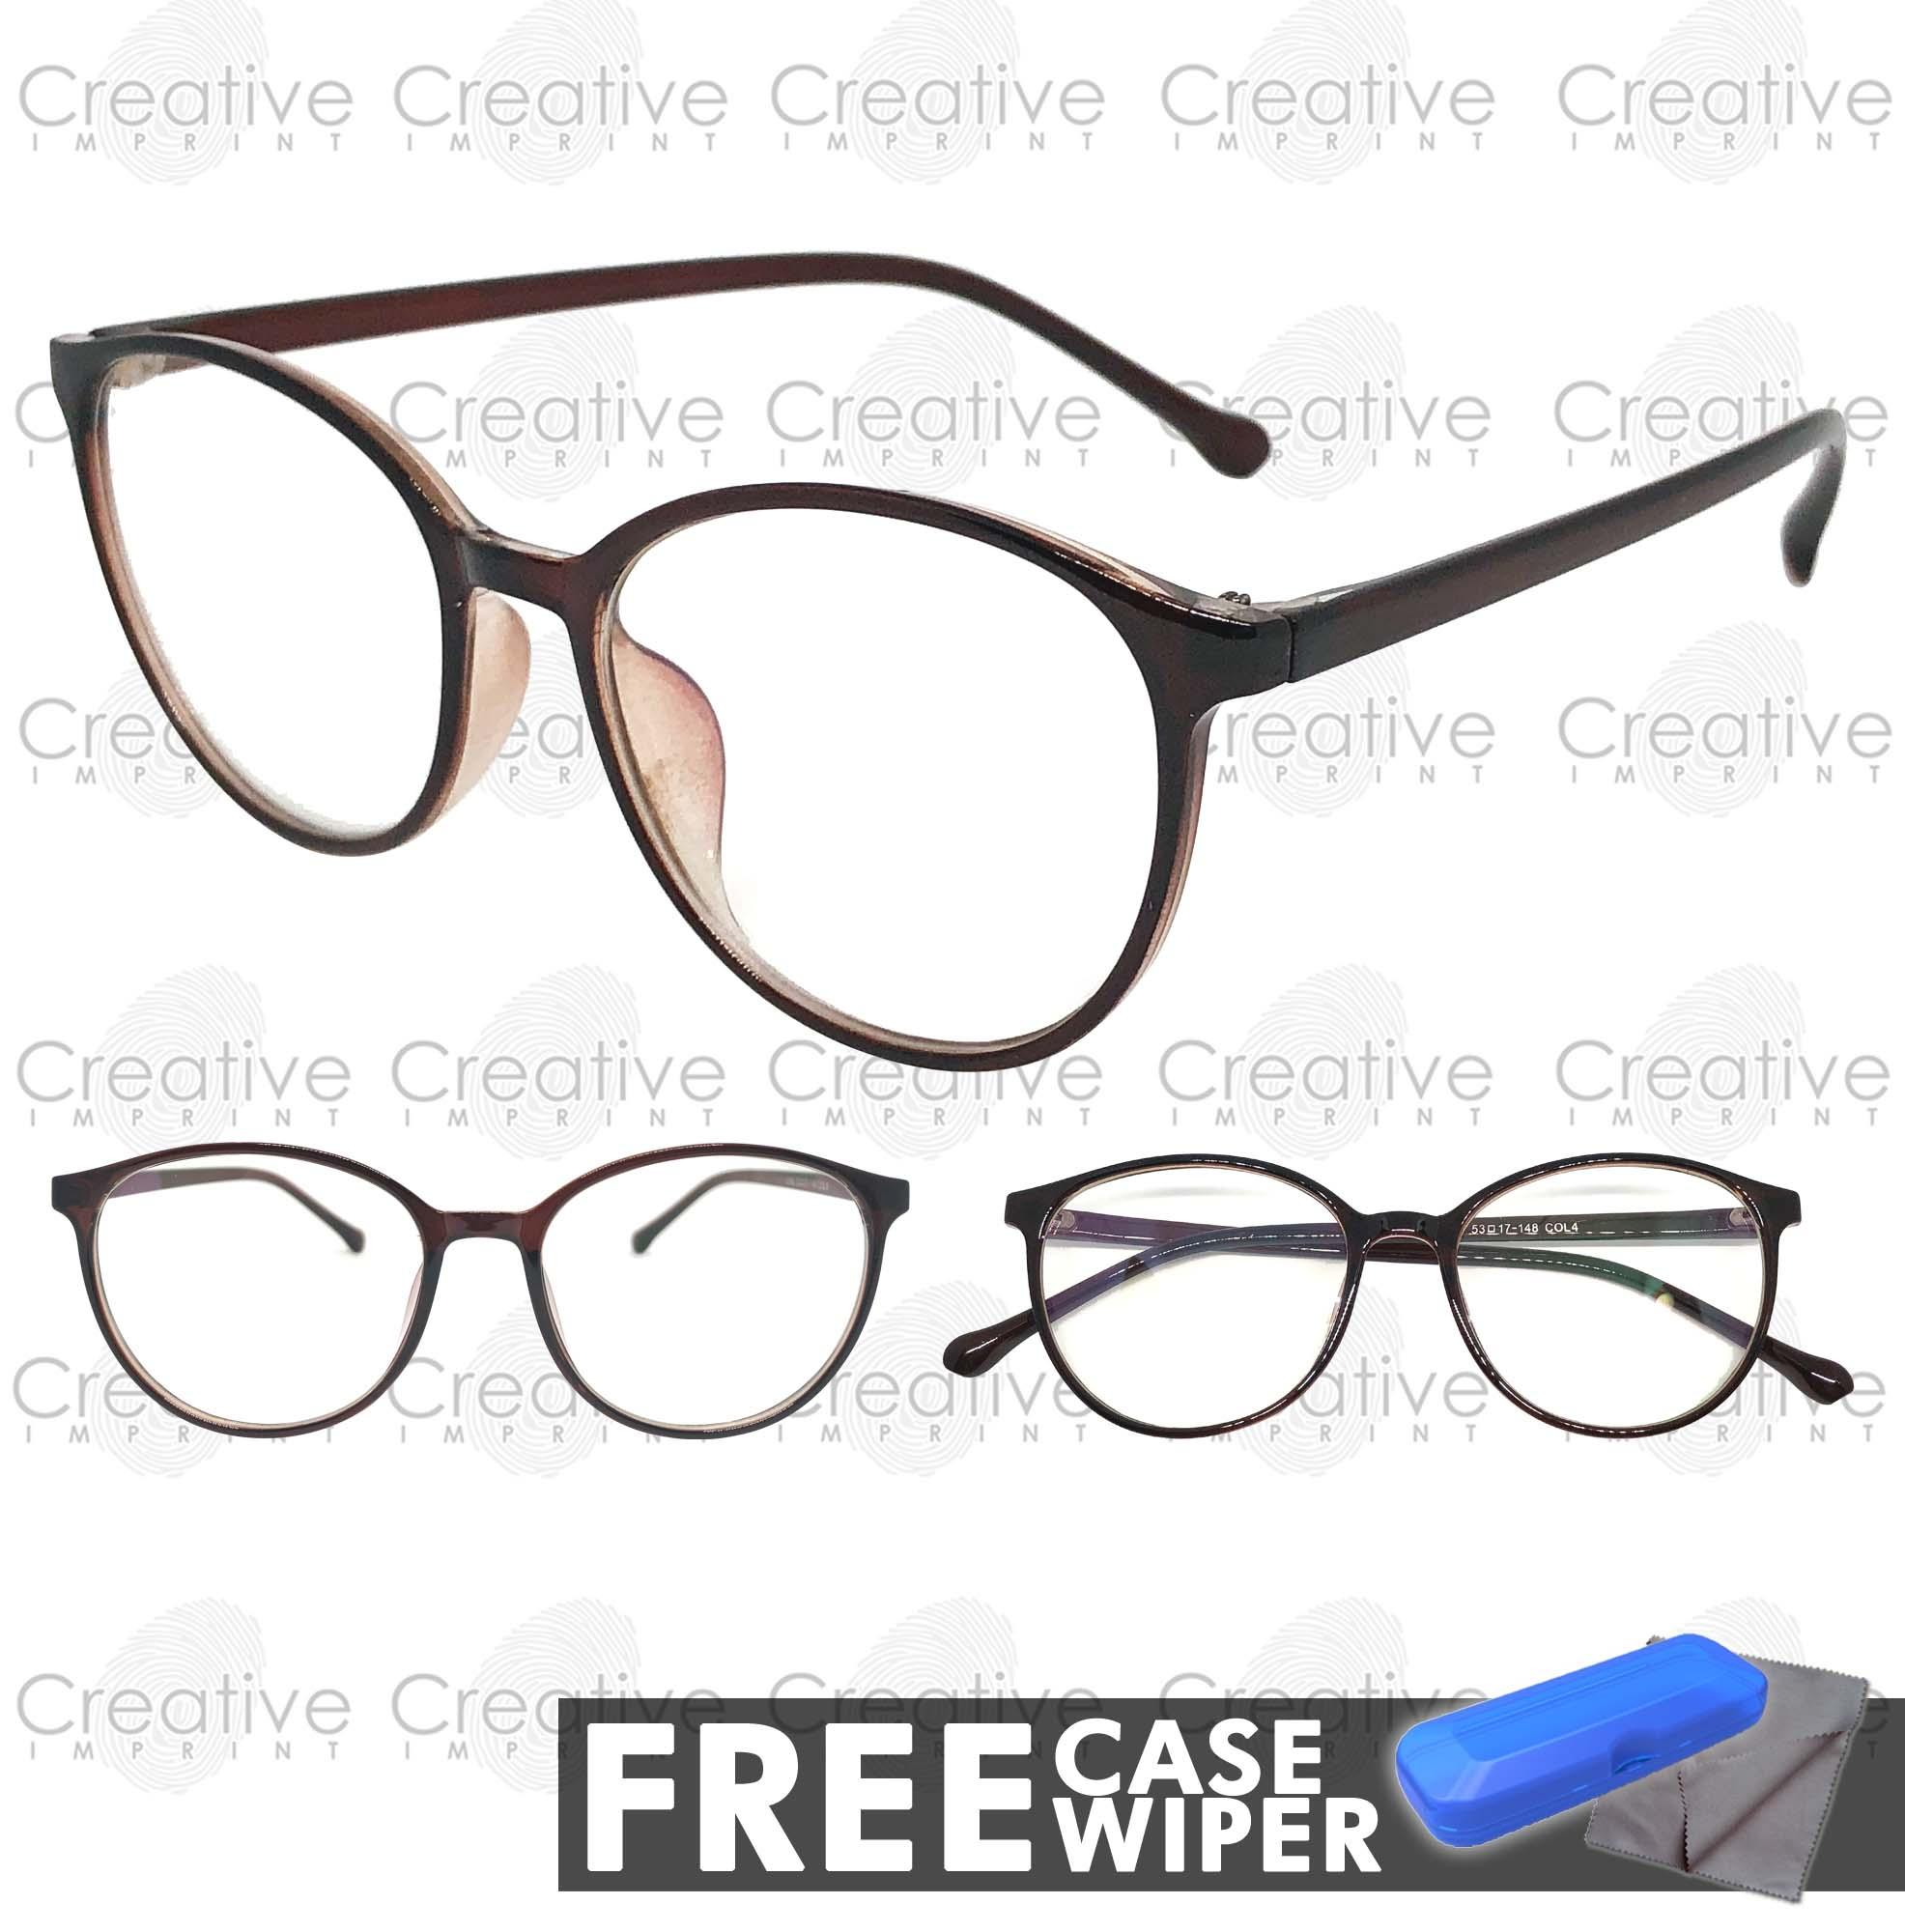 536aa831b40 Creative Imprint Eyeglasses Anti-Radiation Lens ( 05 Brown) Anti-Fatigue  Anti